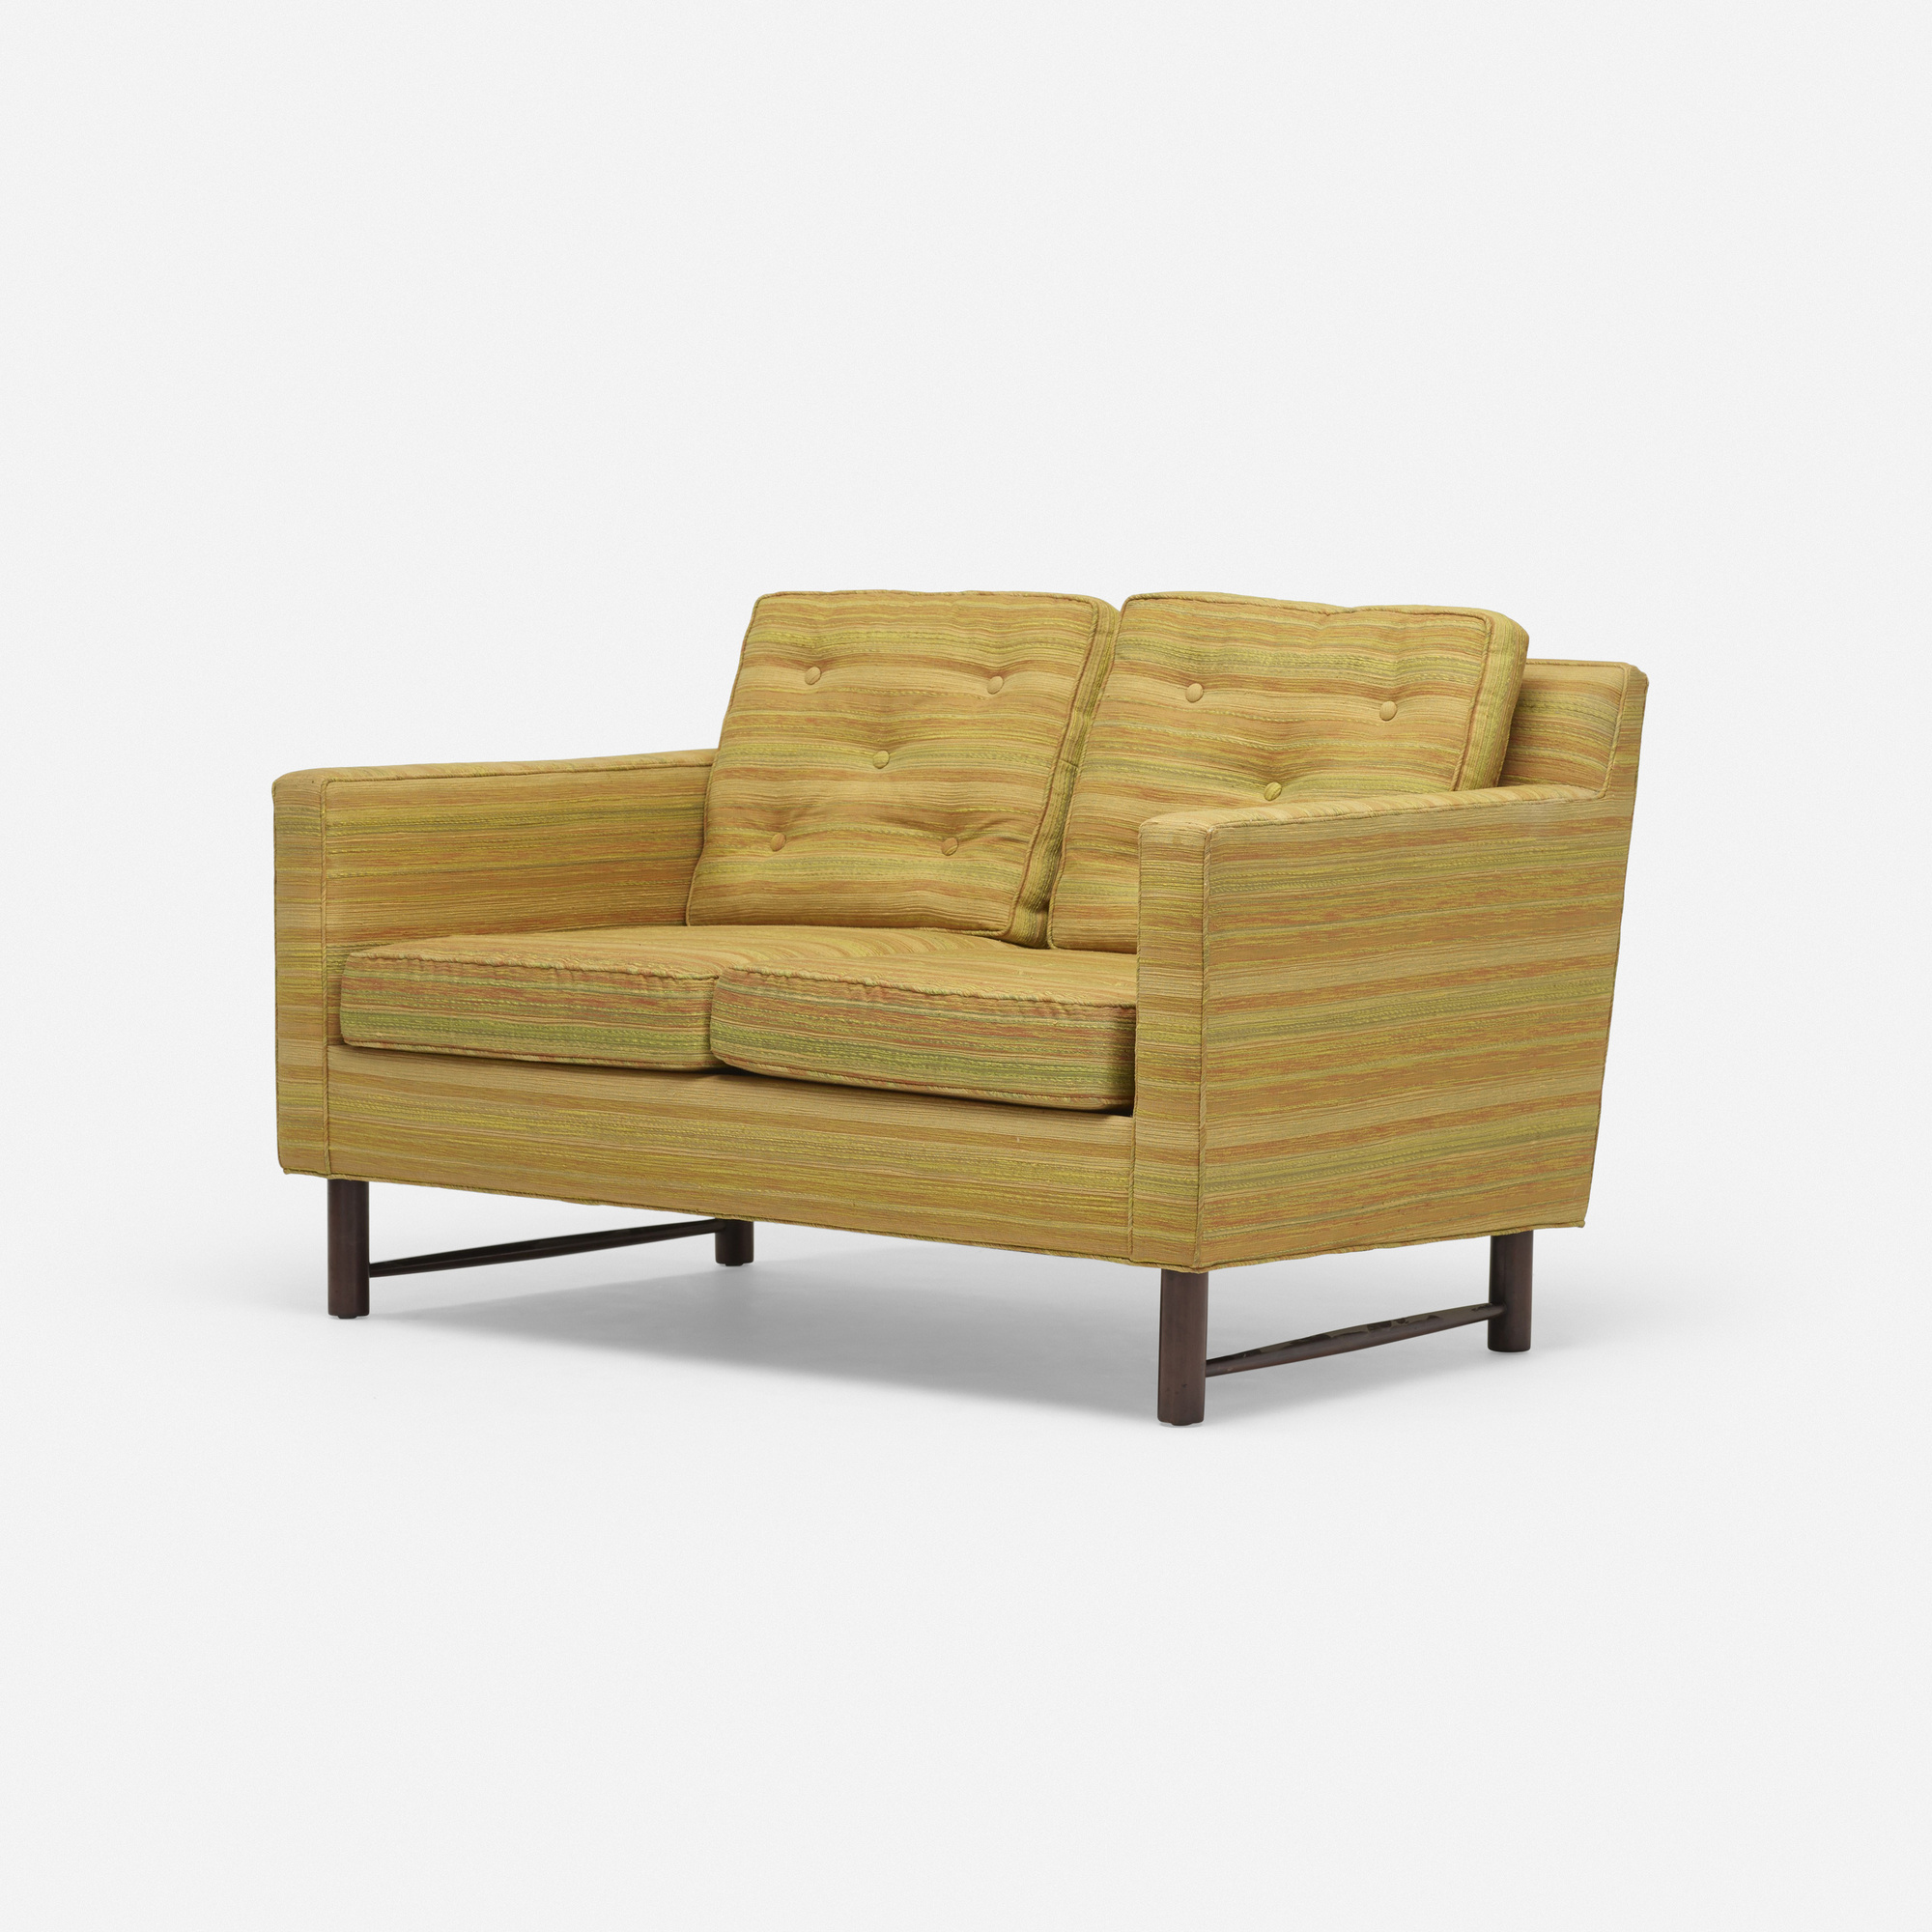 809: Edward Wormley / settee, model 253 (1 of 3)